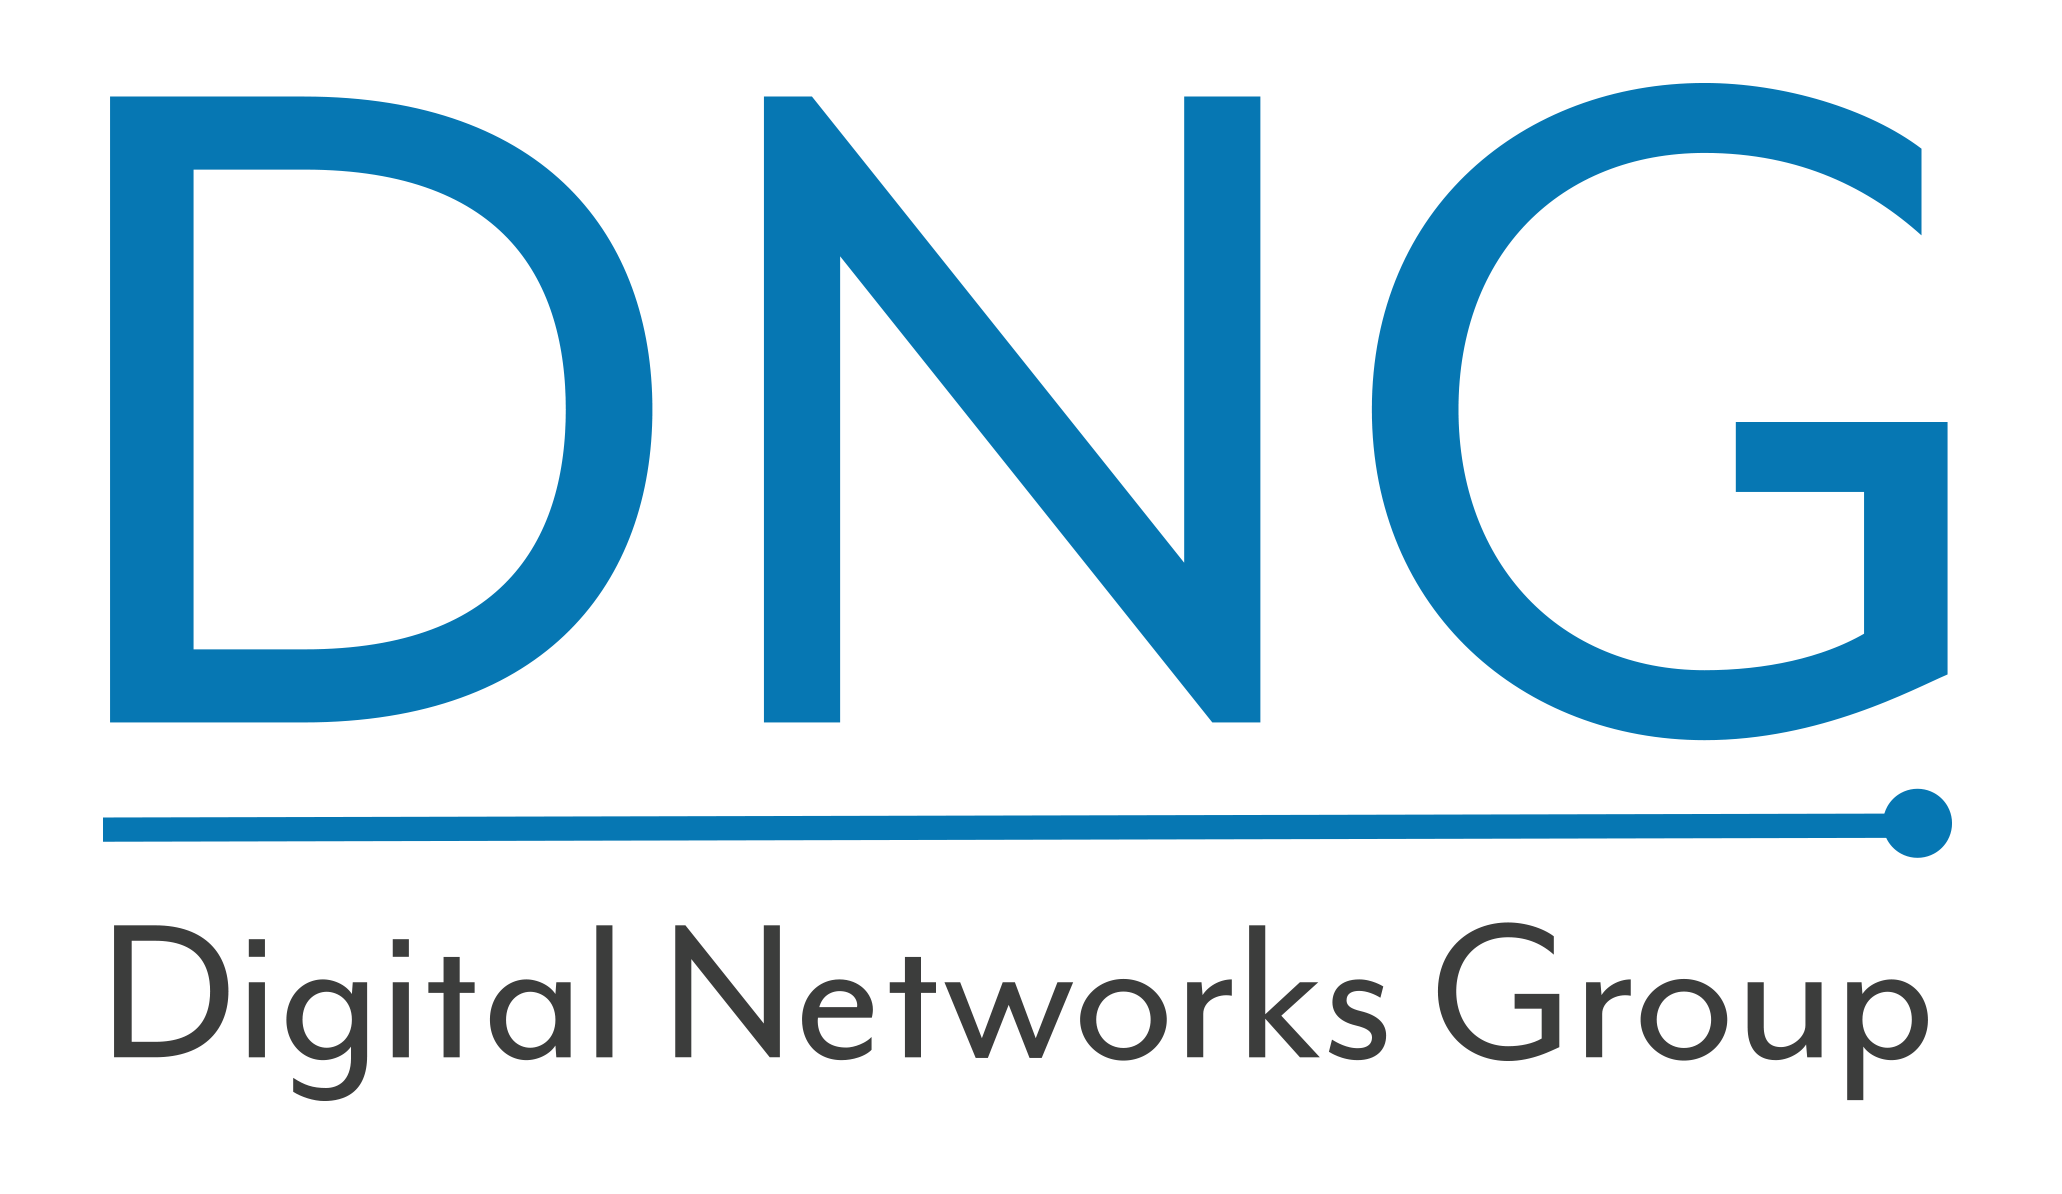 DNG - Digital Networks Group